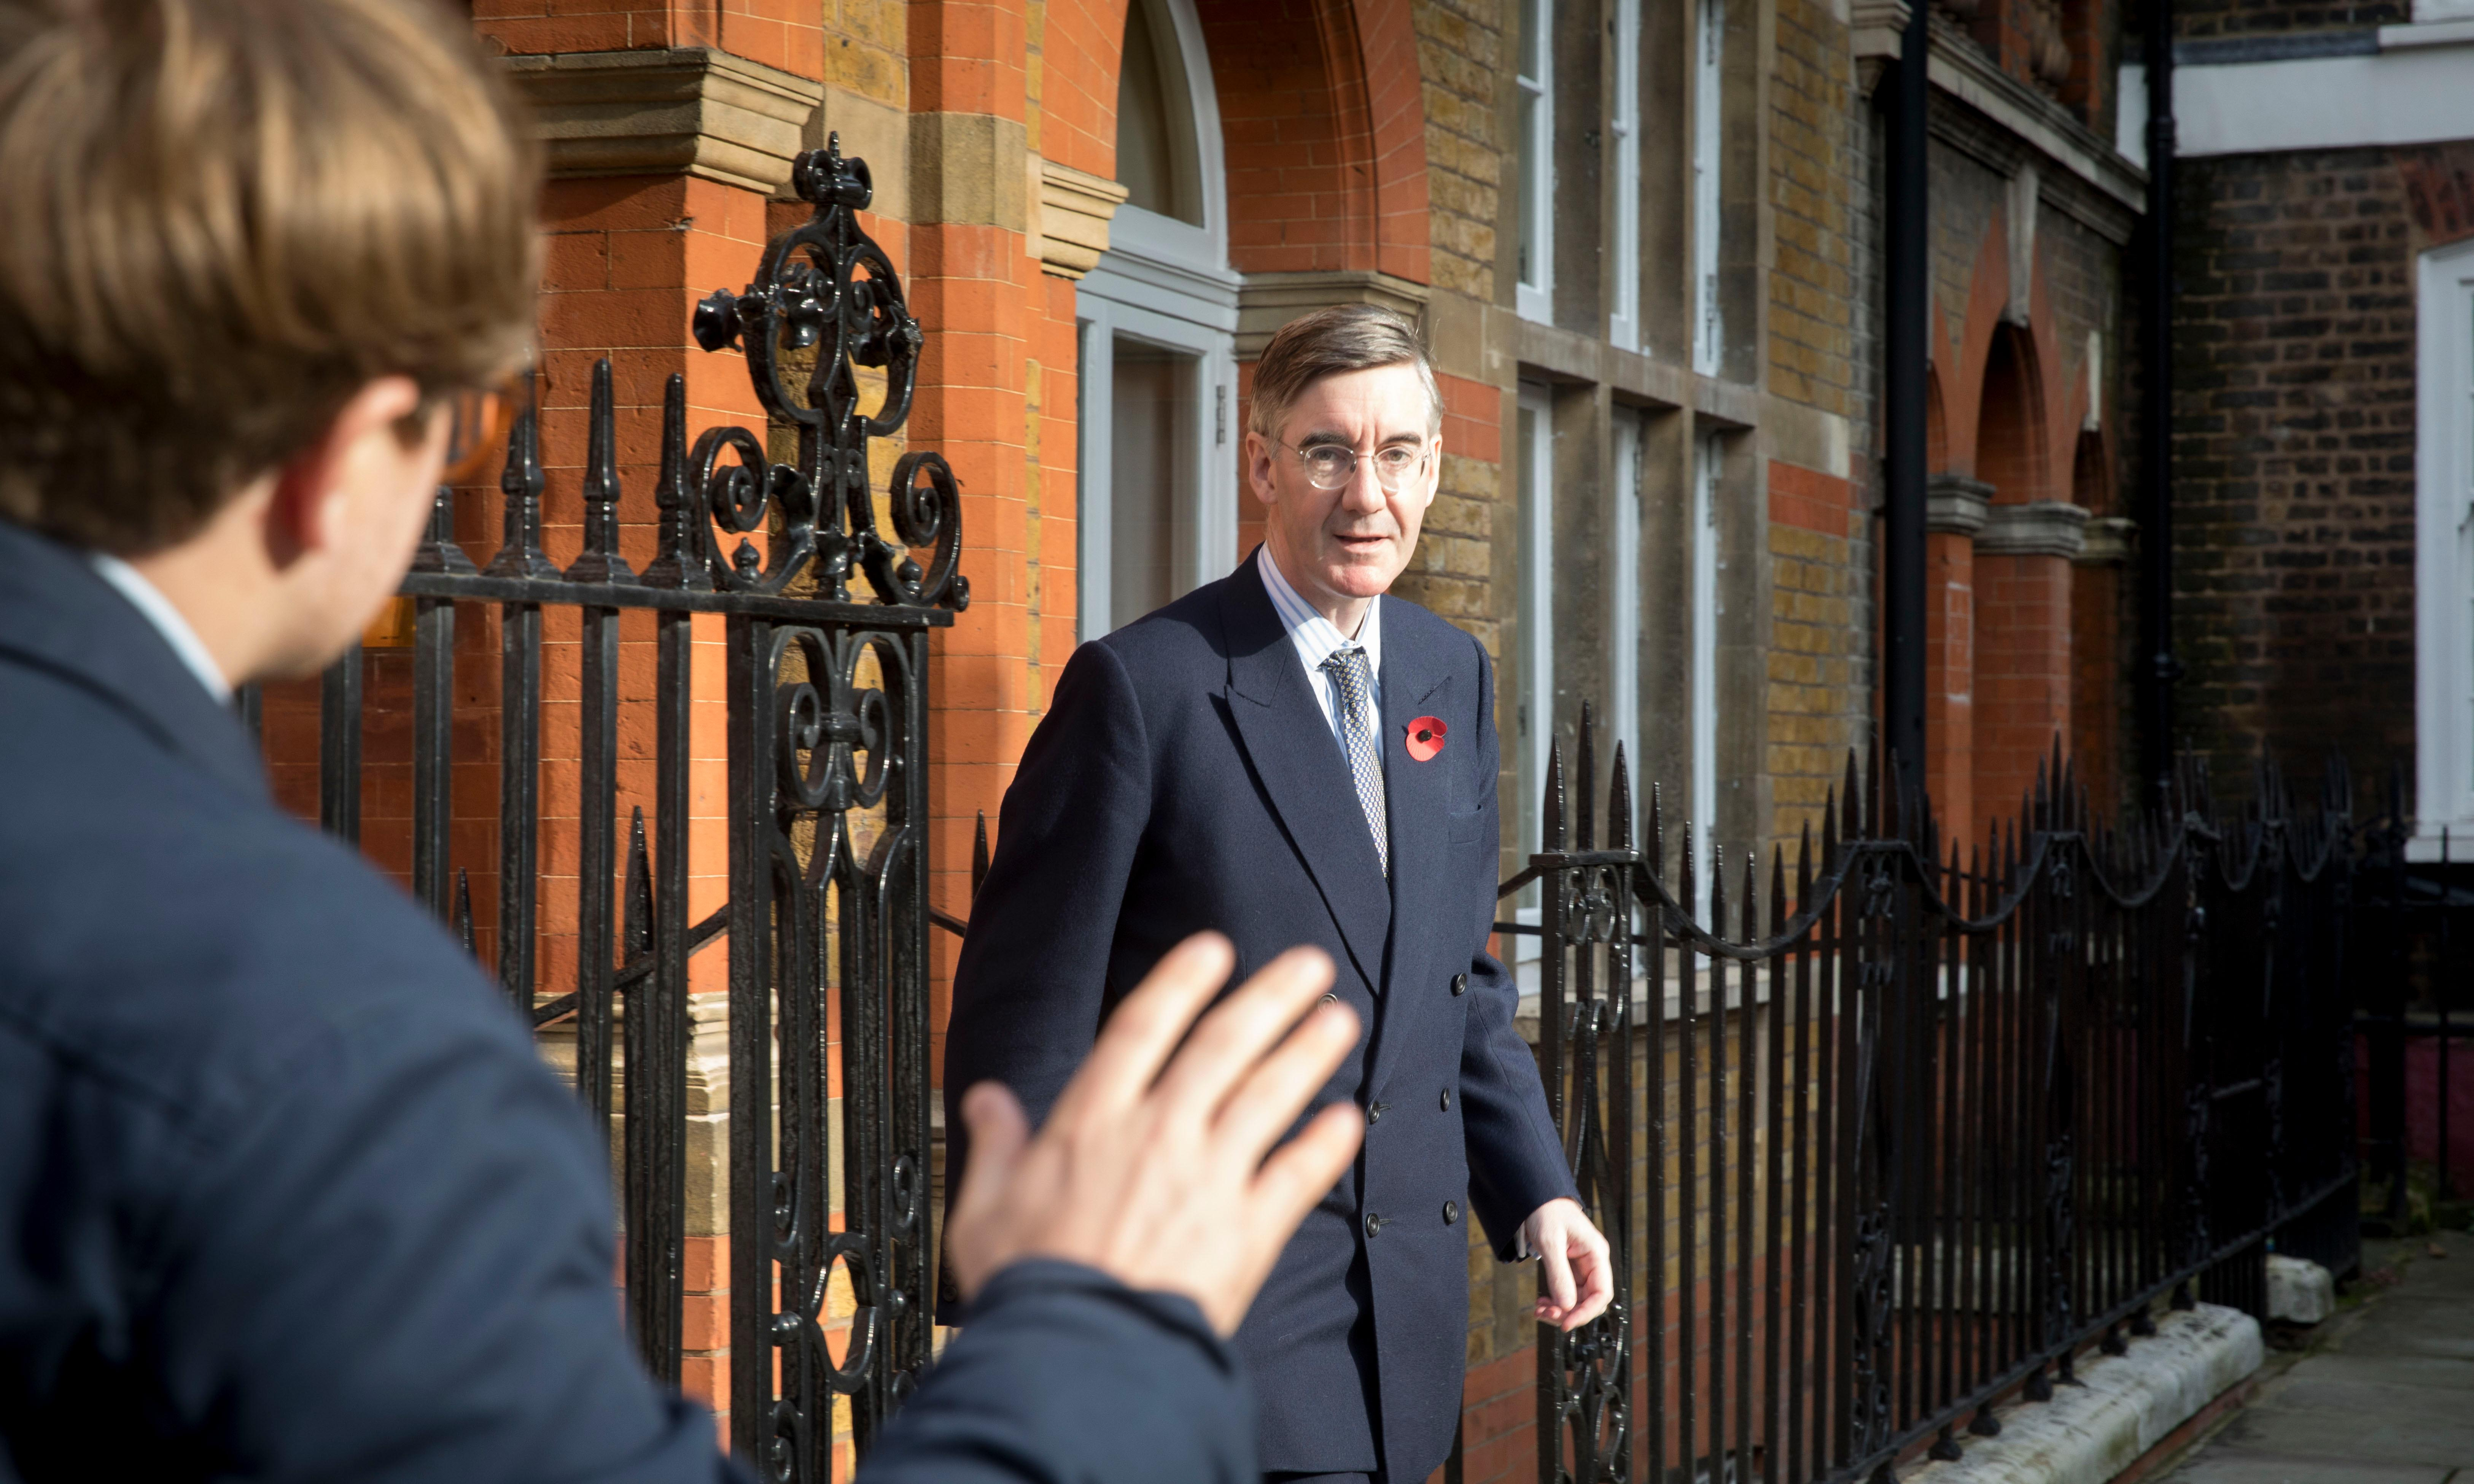 Jacob Rees-Mogg opts for low profile amid Grenfell remarks fury